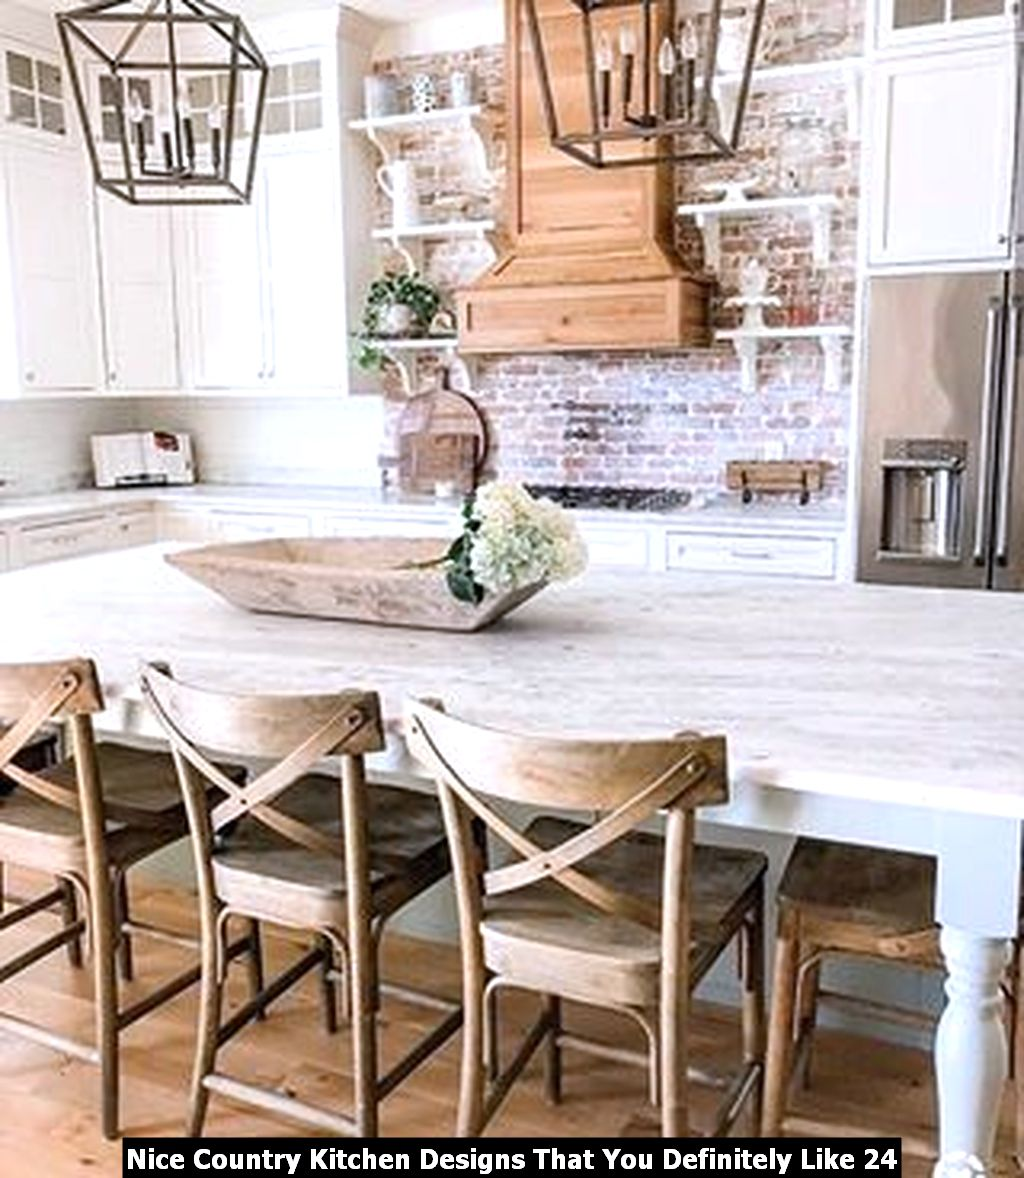 Nice Country Kitchen Designs That You Definitely Like 24